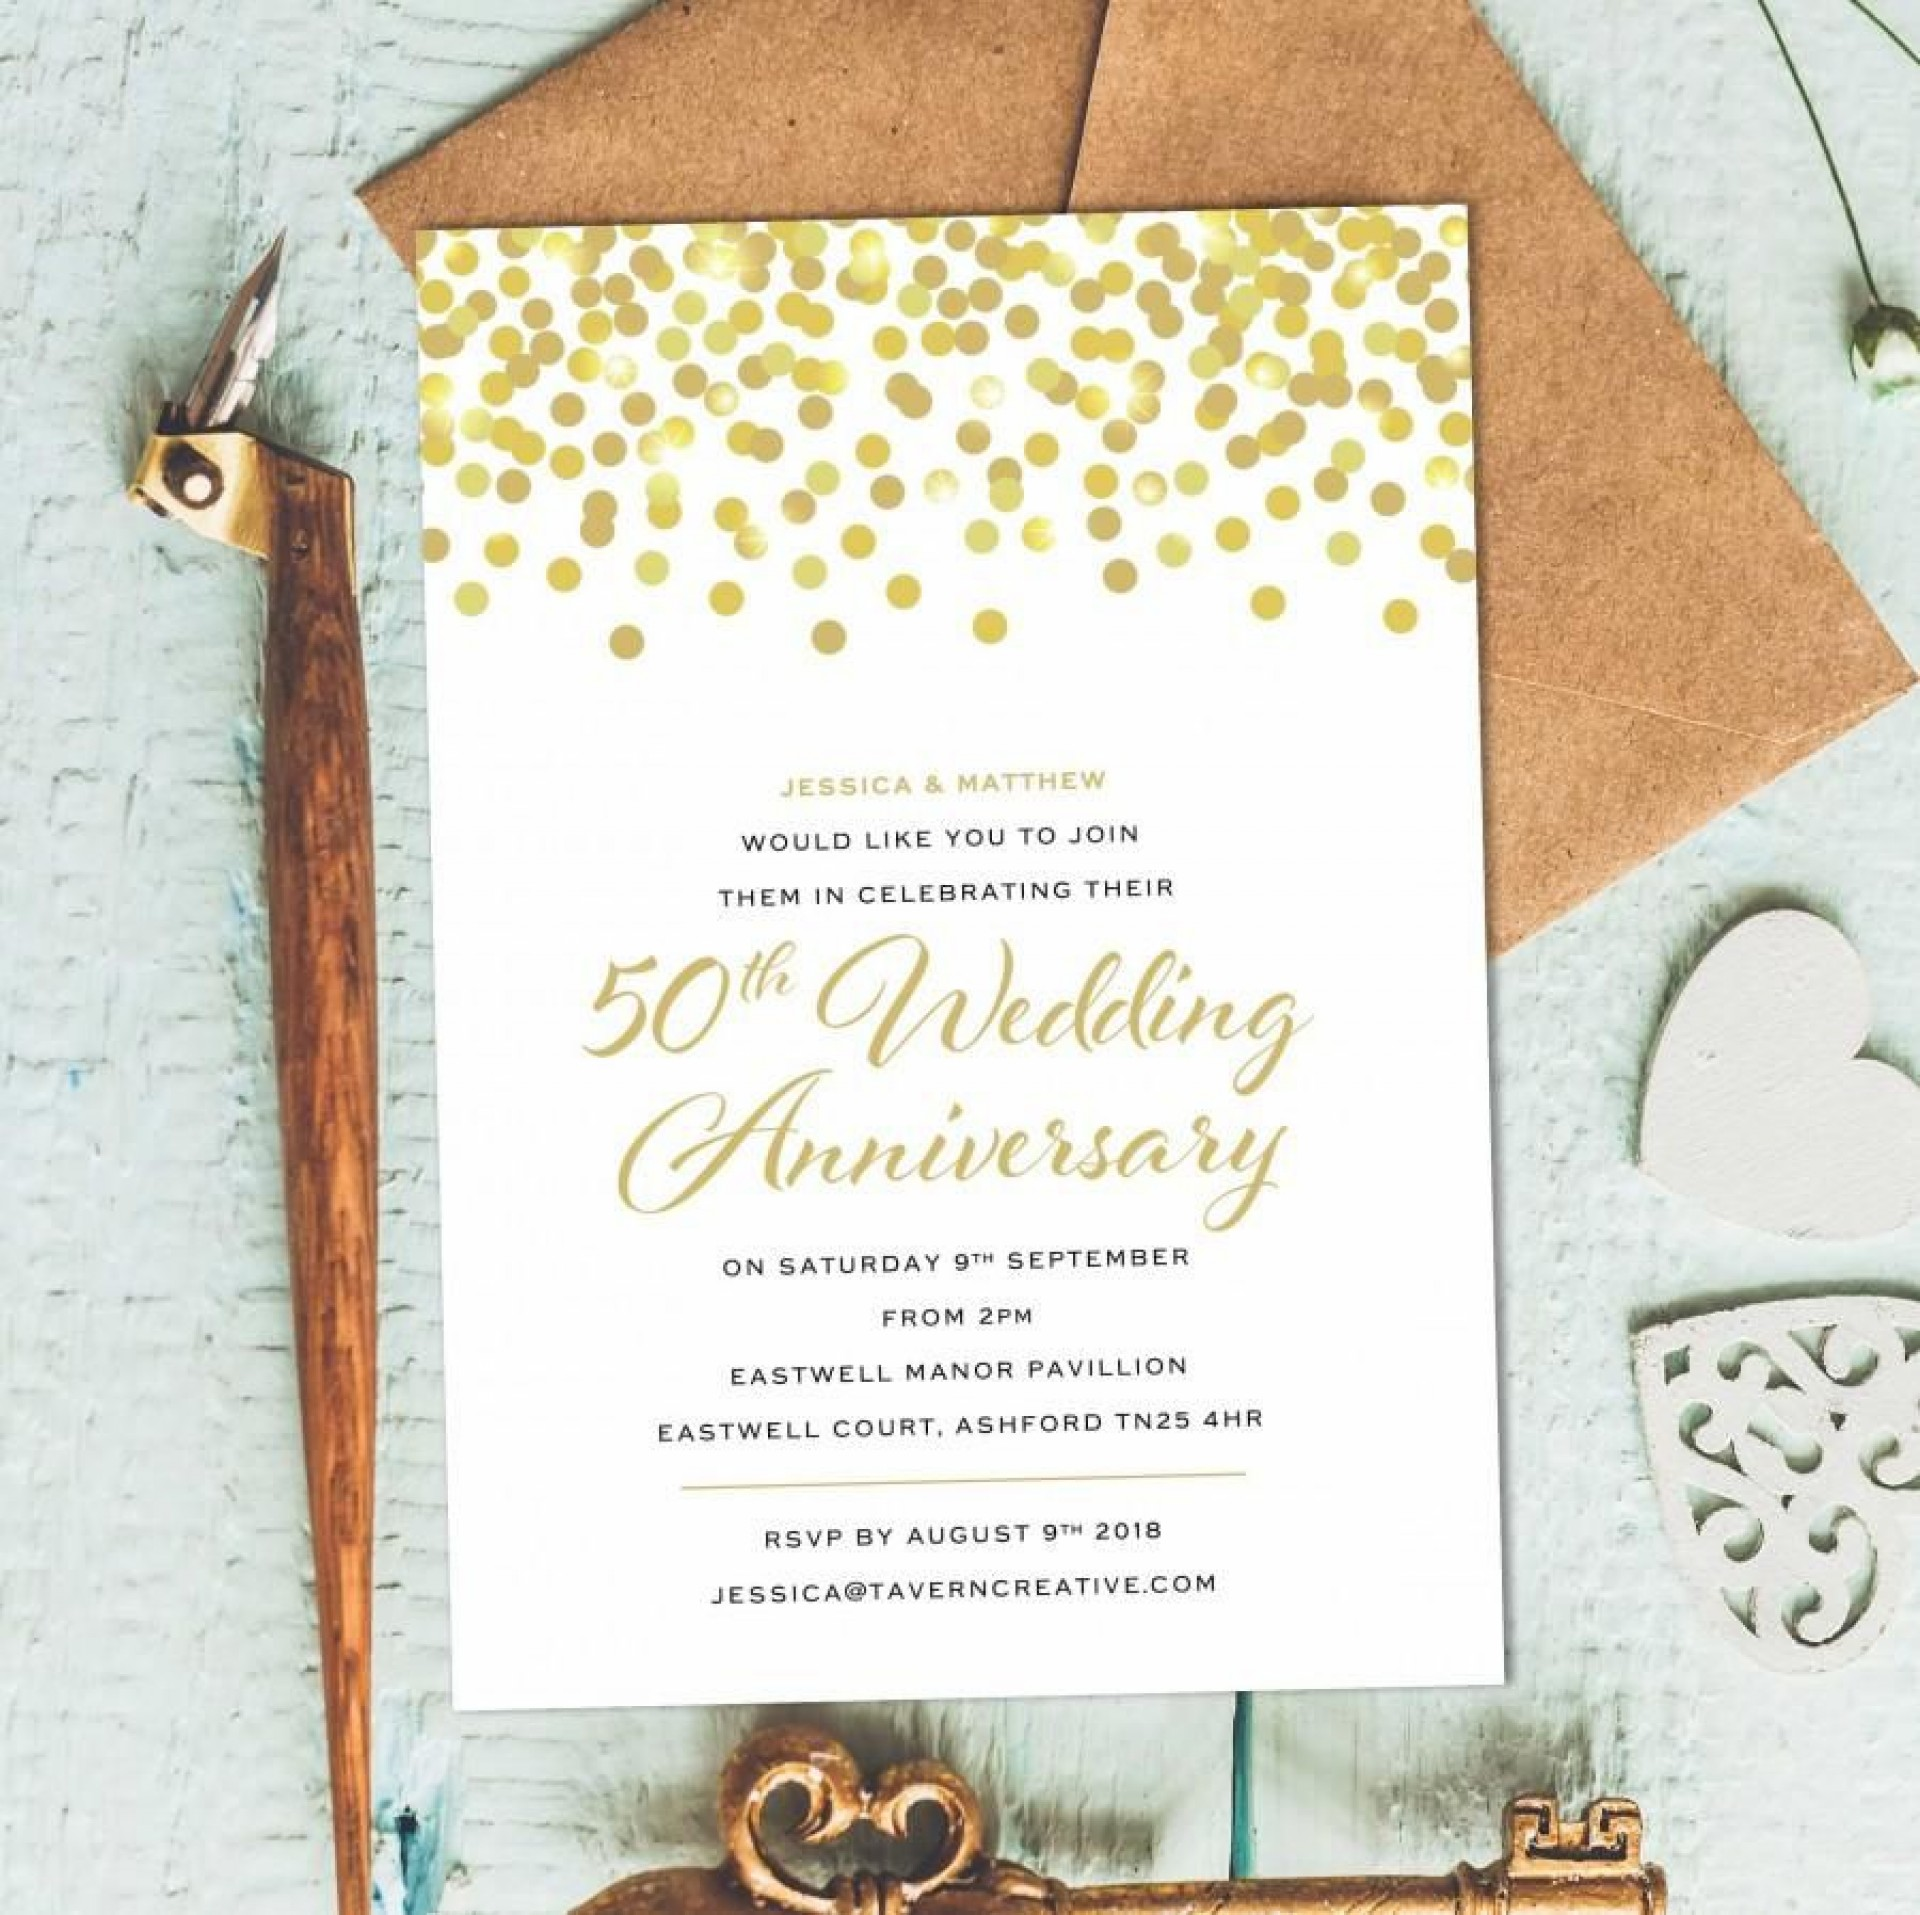 003 Unbelievable Free 50th Wedding Anniversary Party Invitation Template Sample  Templates1920